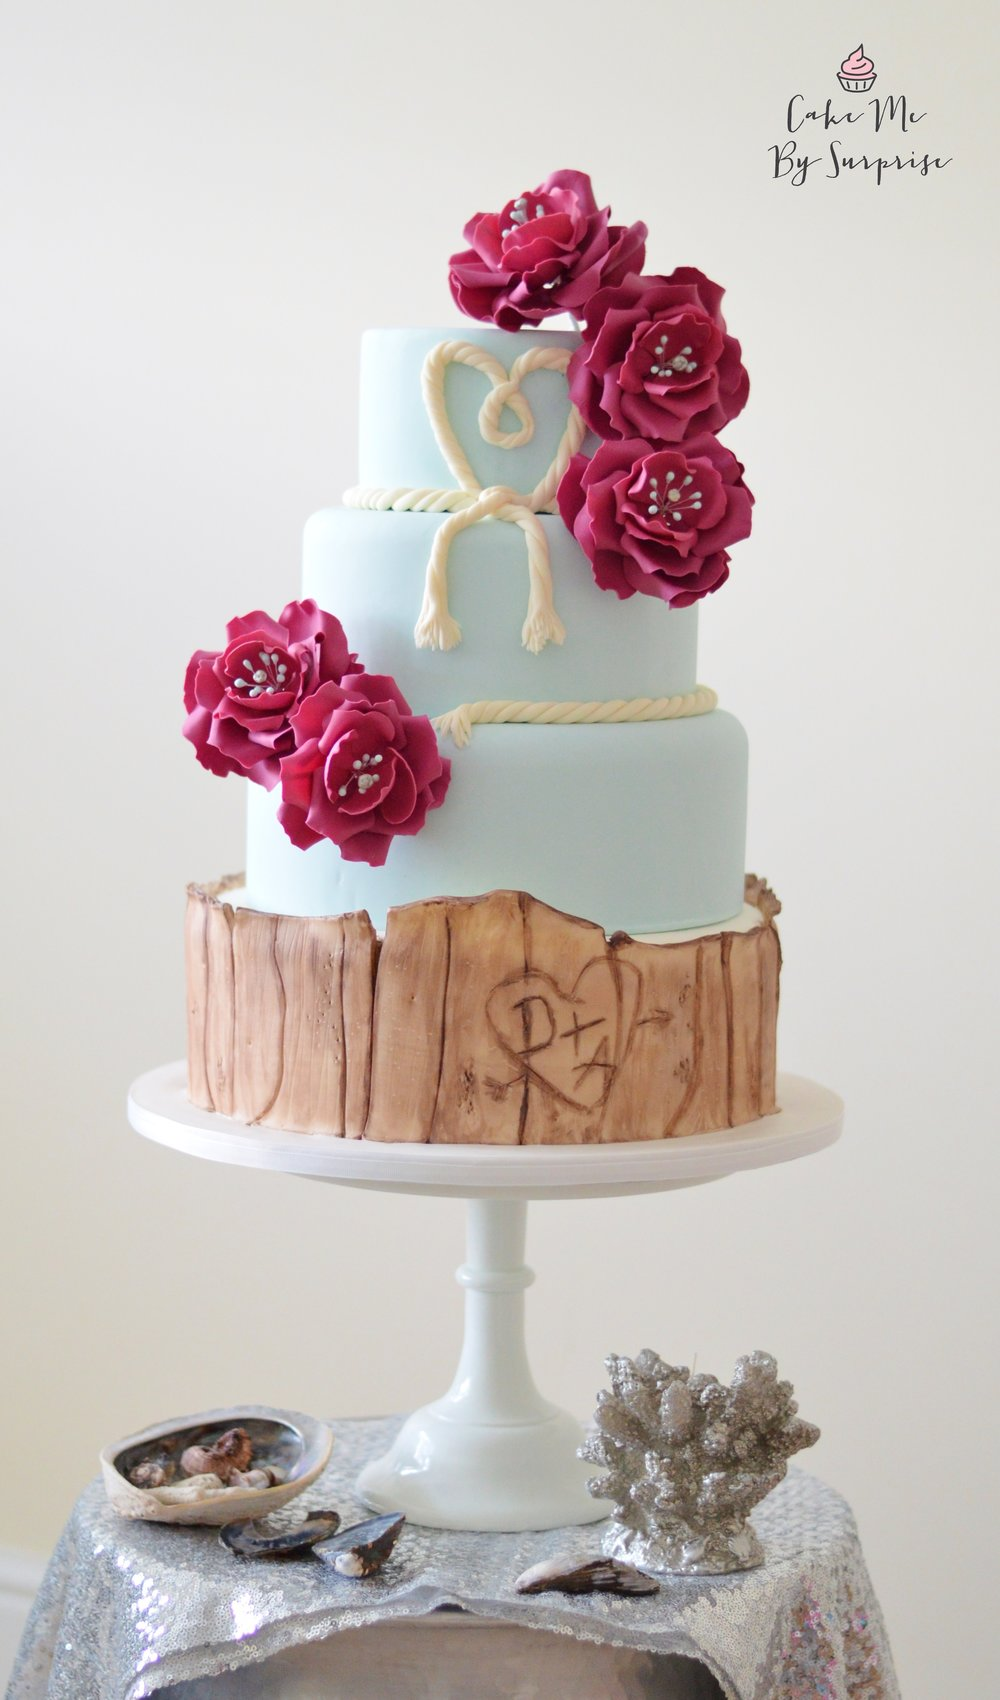 Drift Wood Wedding Cake  Serves 130 (dessert size) 212 (coffee size) A four tier wedding cake completed with edible drift wood base tier, that can be personalized with the bride and grooms initials. A 'tie the knot' rope heart has been wrapped around the top tier, and to finish beautiful handcrafted sugar flowers cascade down this blue fondant cake.  £645